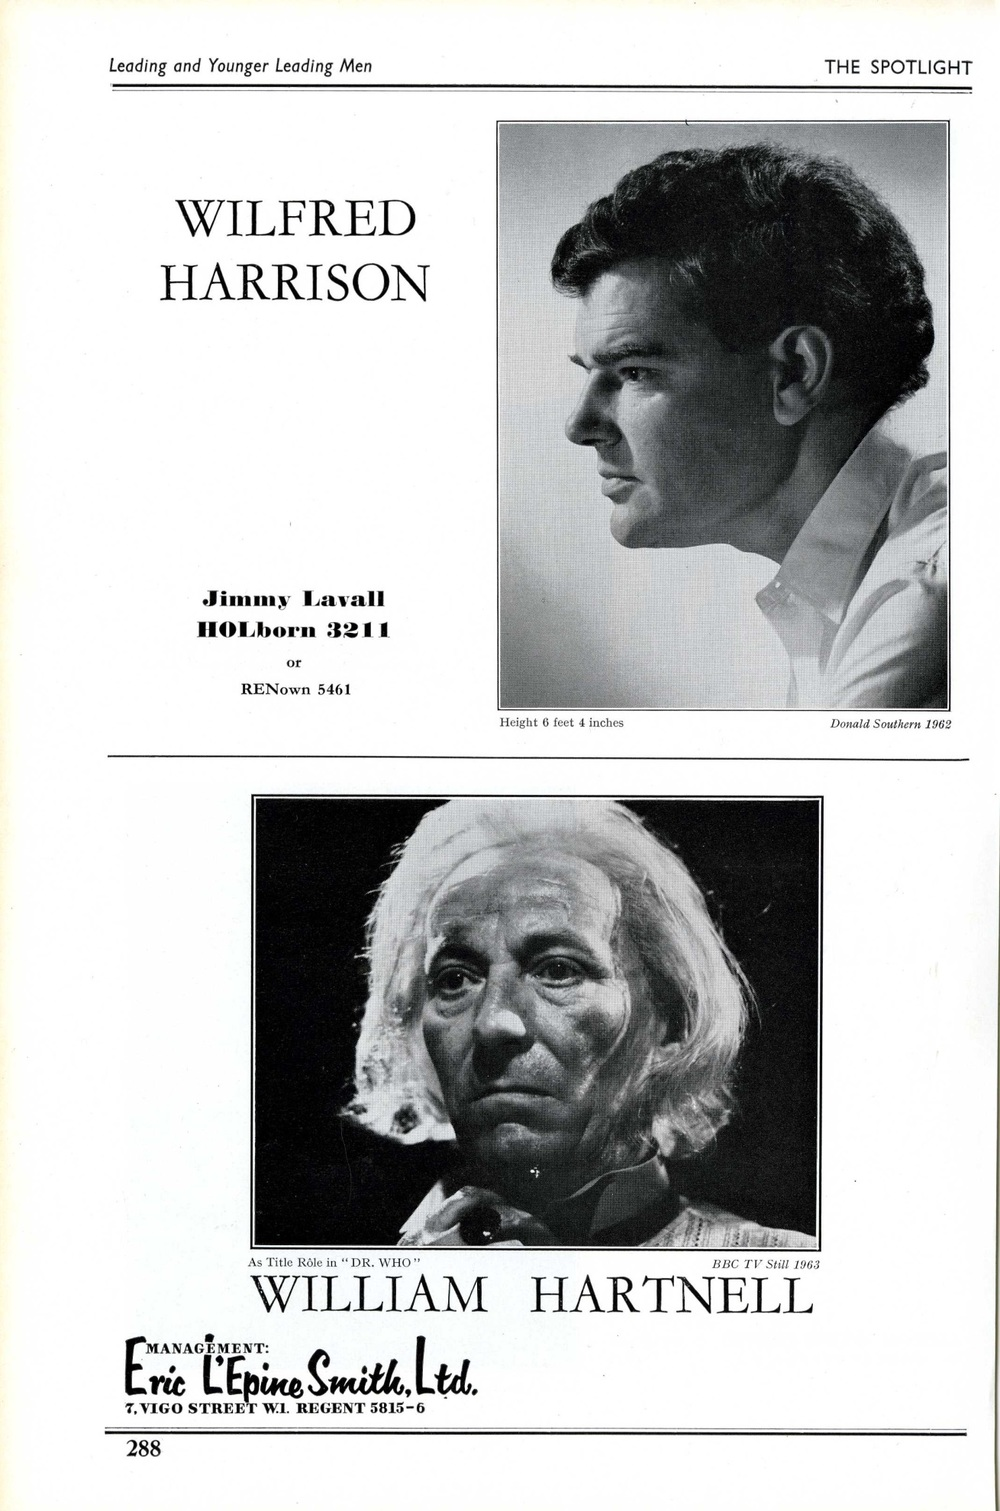 William Hartnell's 1964 entry in The Spotlight, the actors' directory